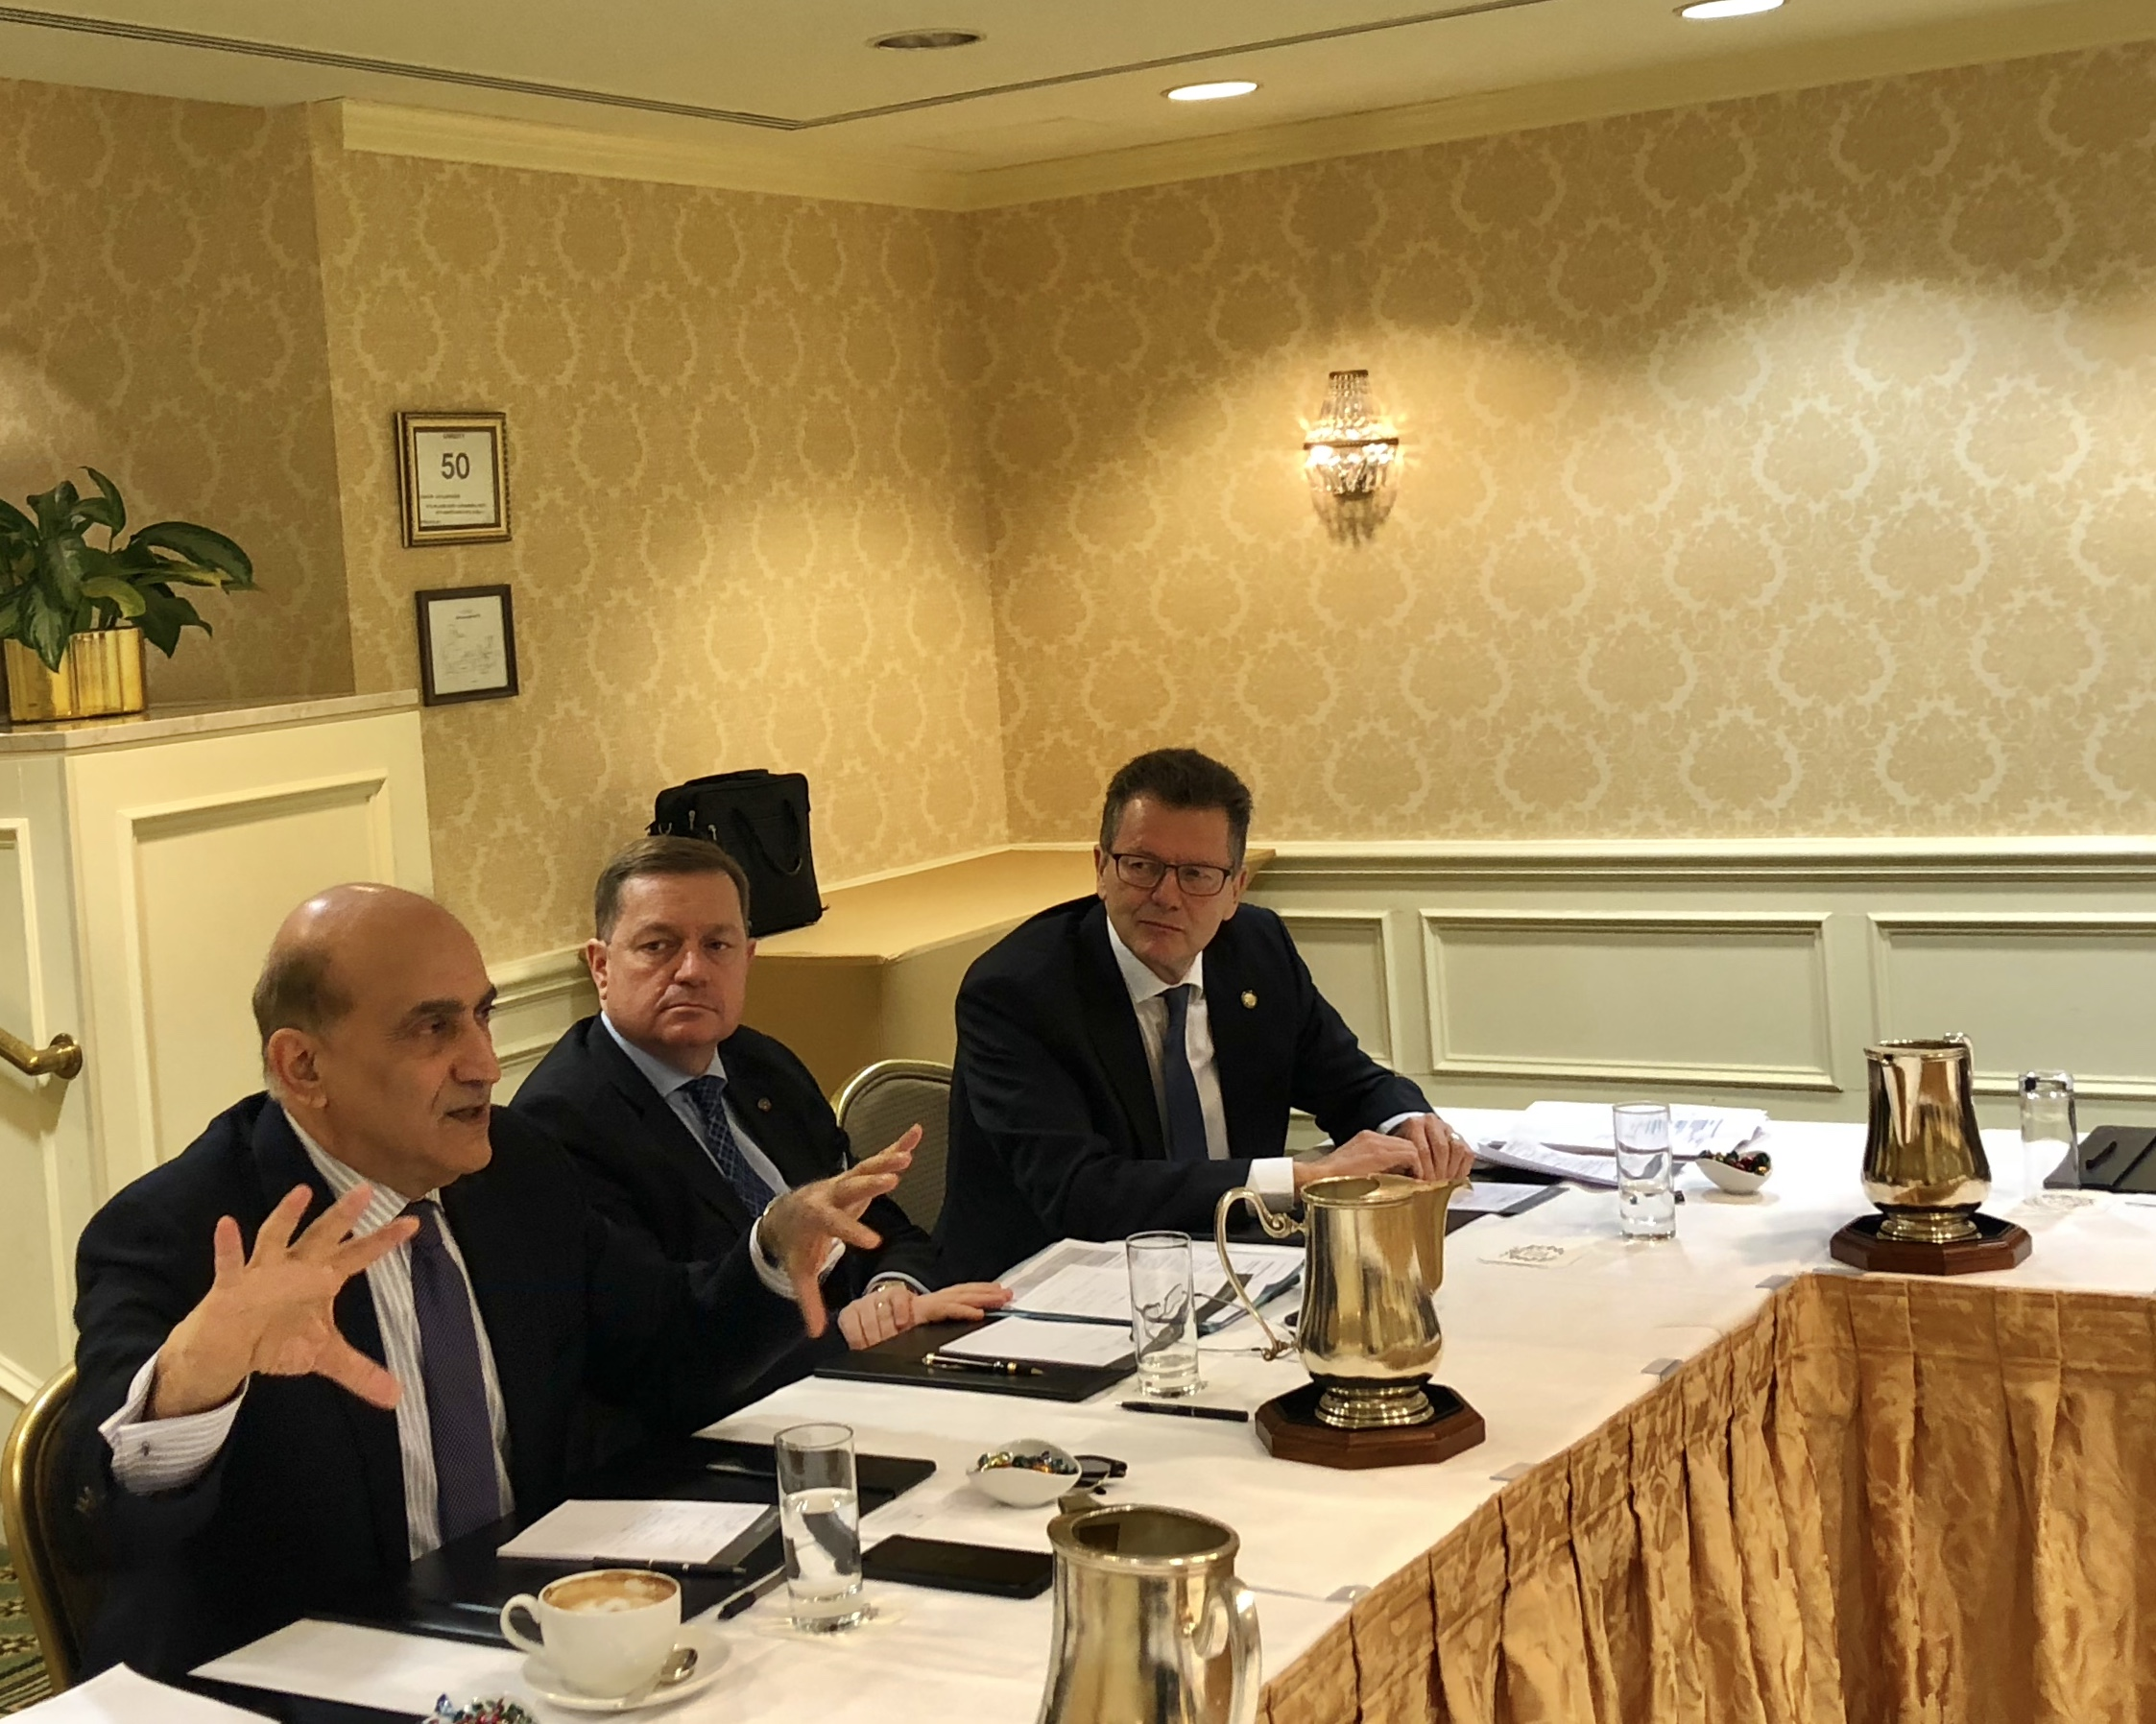 First from left: Dr. Walid Phares, Co-Chair of the Transatlantic Parliamentary Group